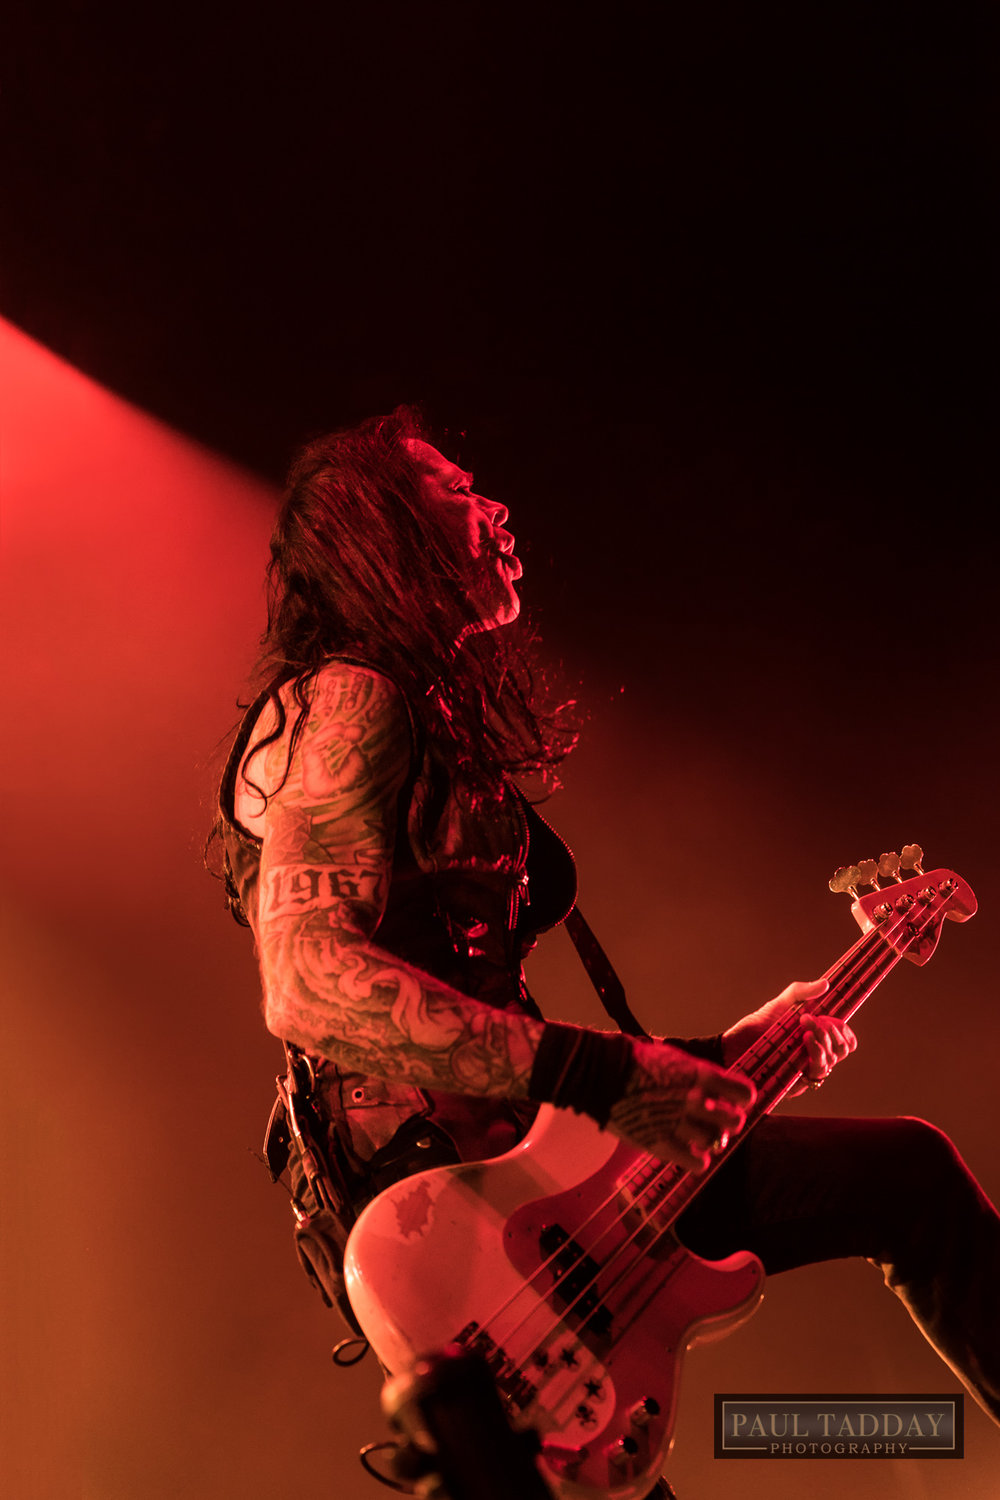 alice cooper - melbourne - paul tadday photography - 201017 - 66.jpg